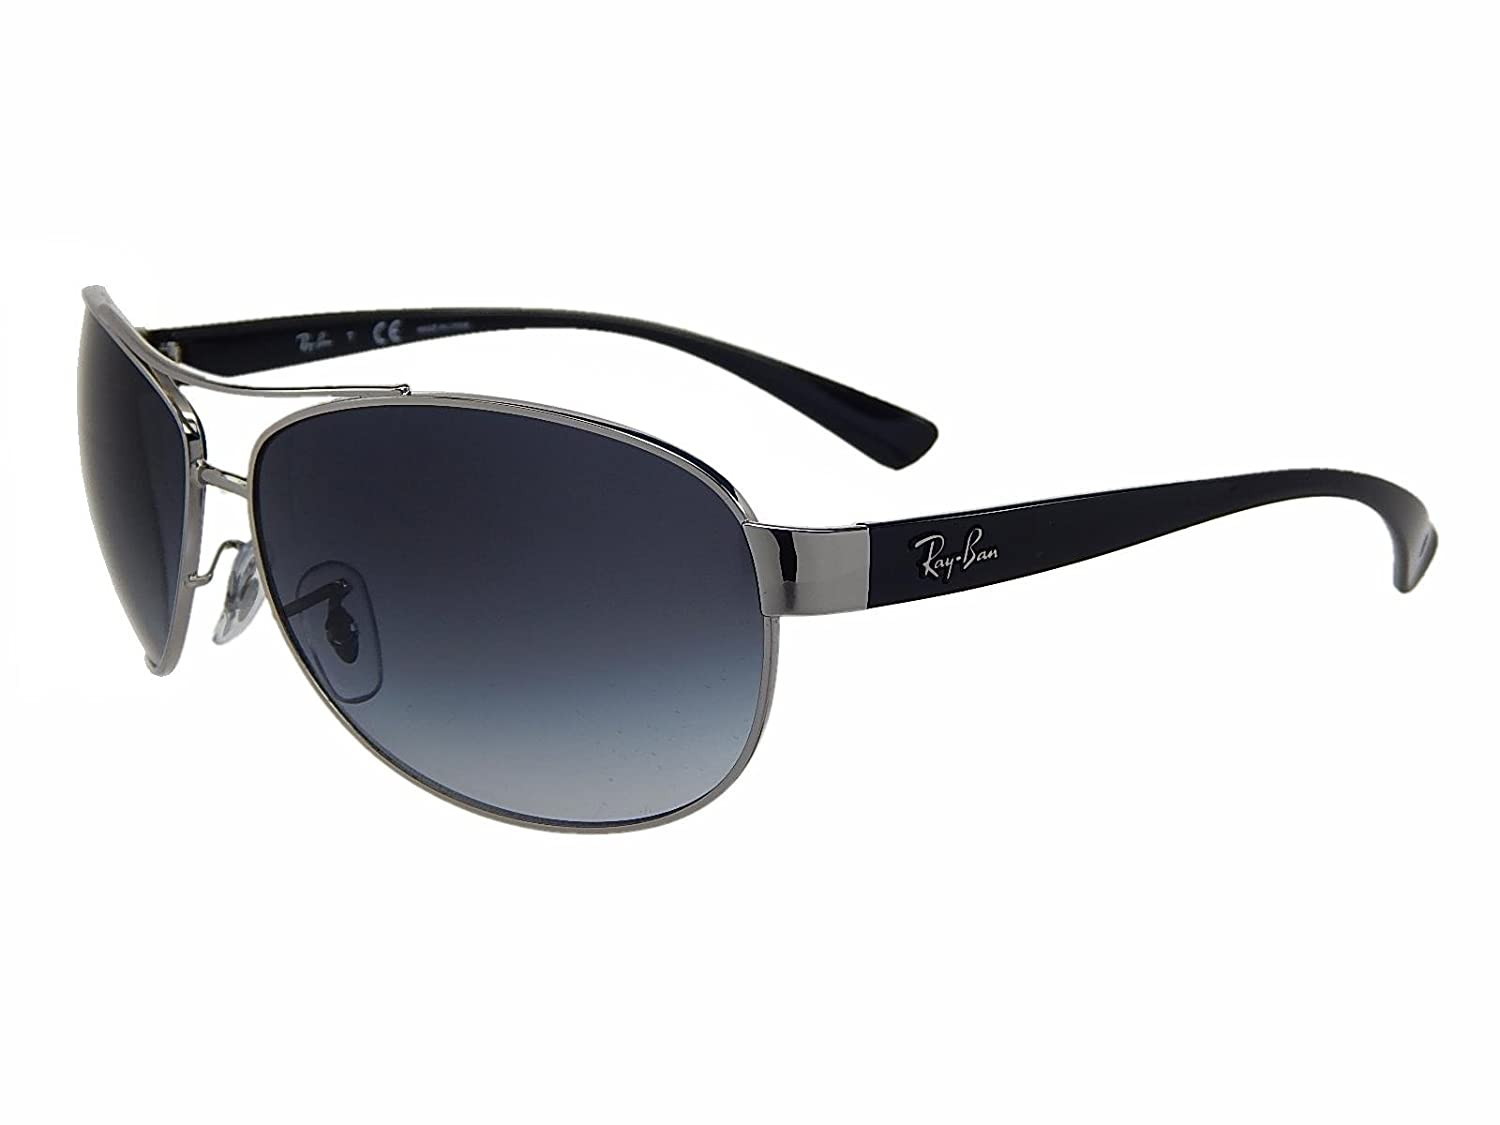 4a1208ed47 Amazon.com: New Ray Ban RB3386 003/8G Silver/Grey Gradient Lens 63mm  Sunglasses: Shoes